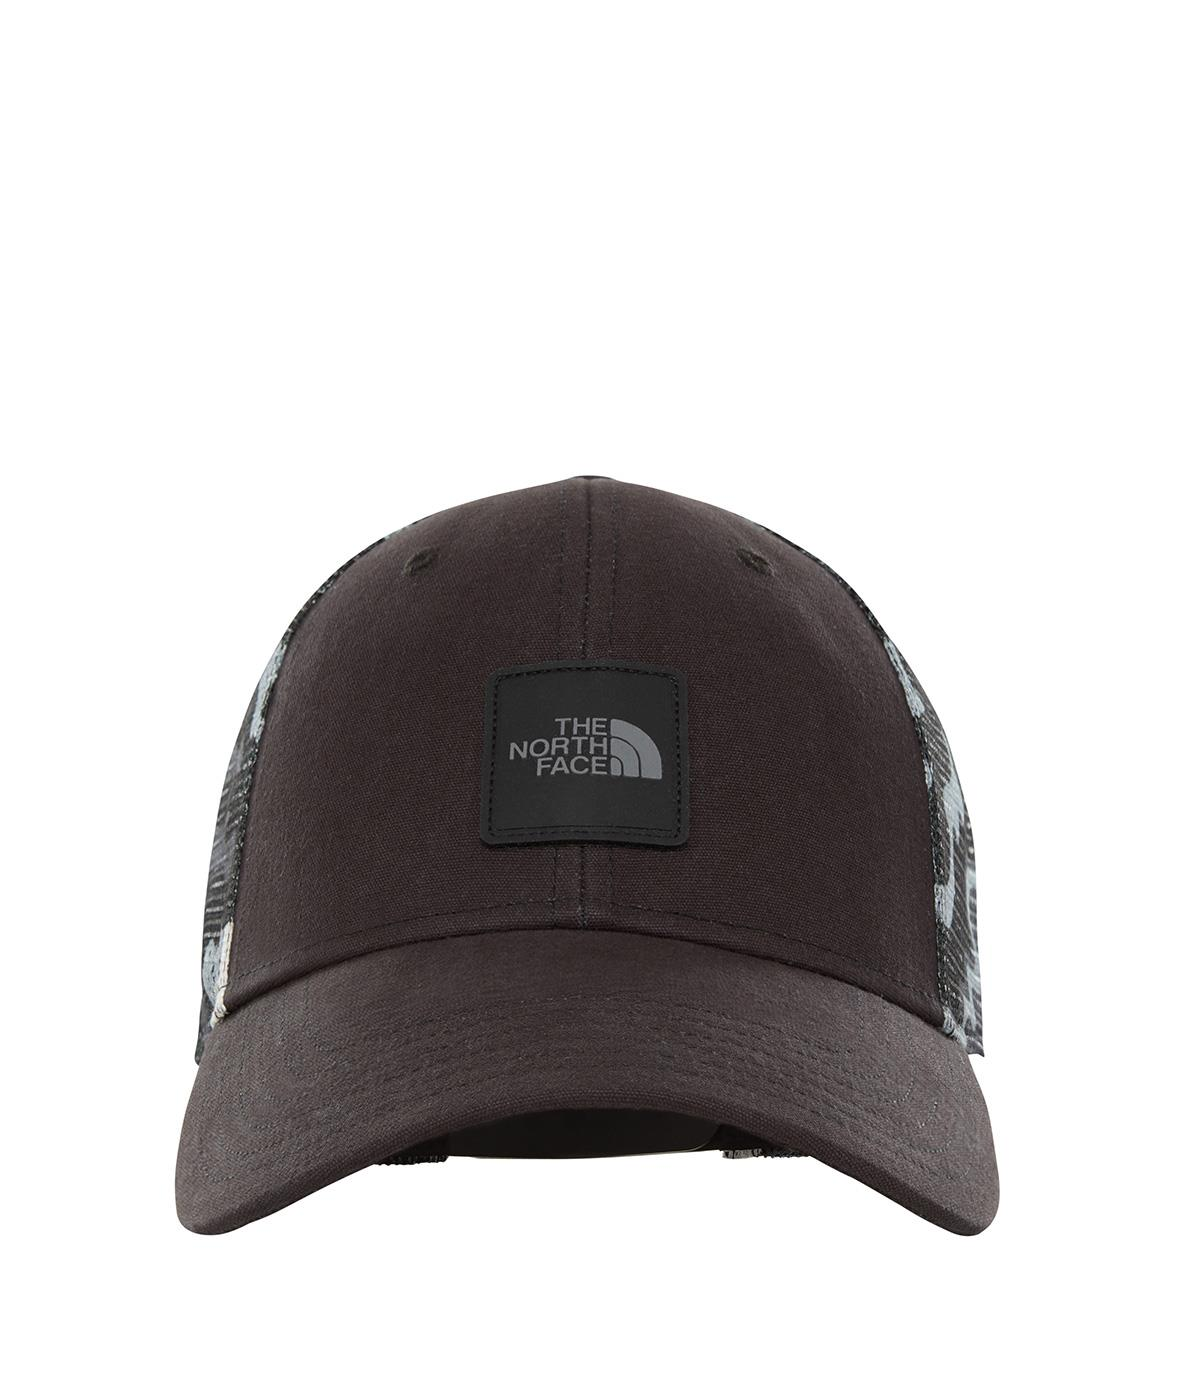 The Northface Mudder Novelty Mesh Trucker T93Fkj9Ve